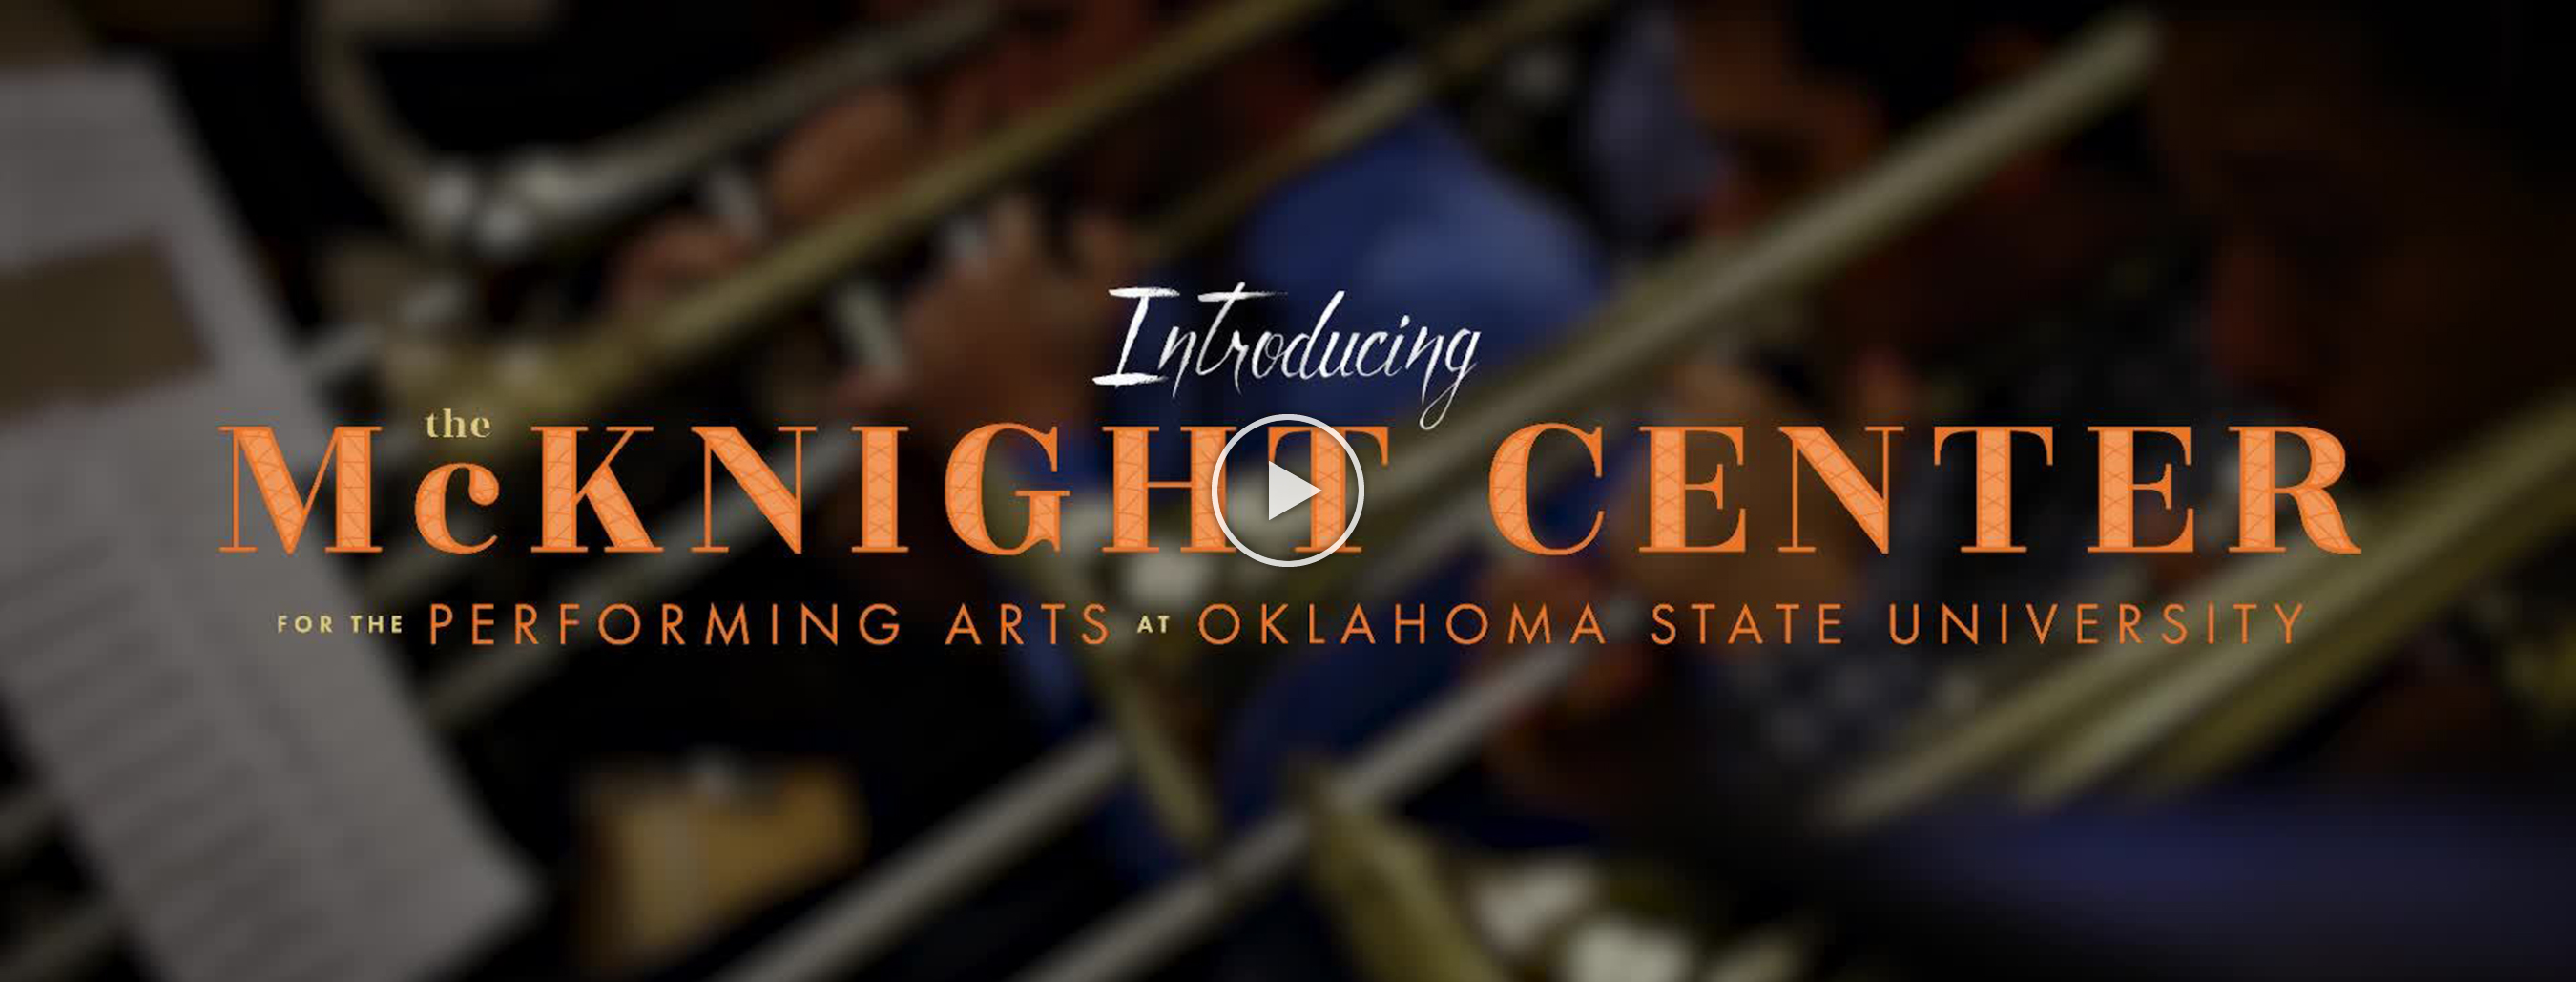 The McKnight Center for the Performing Arts at Oklahoma State University named in honor of visionary gift